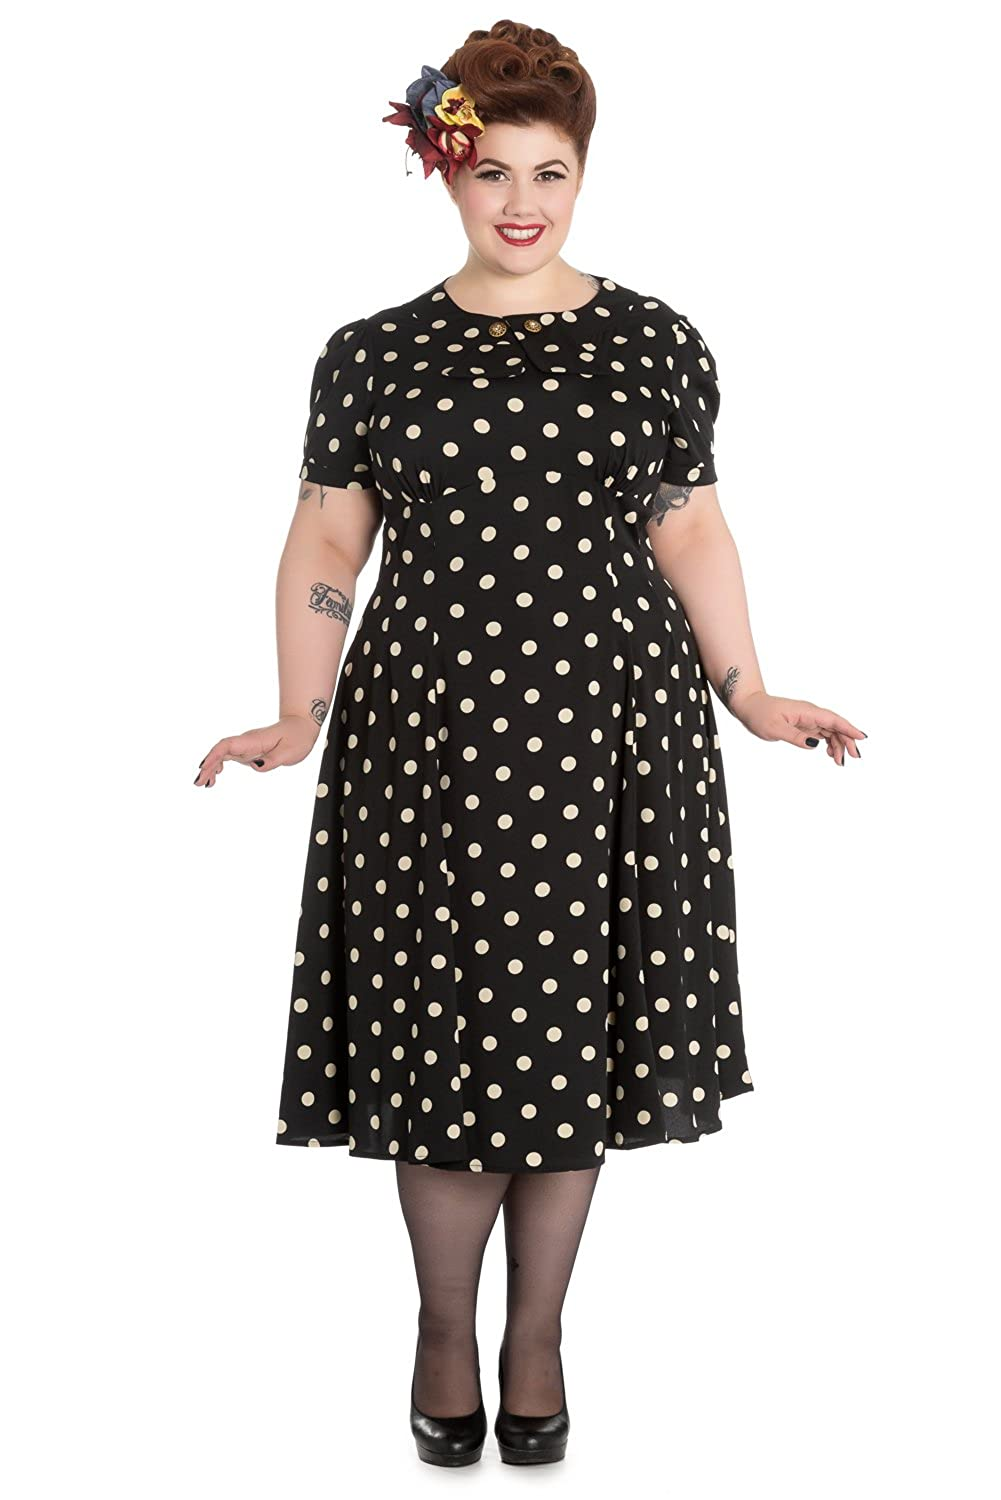 Plus Size Polka Dot Dresses – Vintage 40s, 50s, 60s Dresses Hell Bunny Plus Size Sweet Office Lady Black Mod Polka Dot Dress $72.00 AT vintagedancer.com